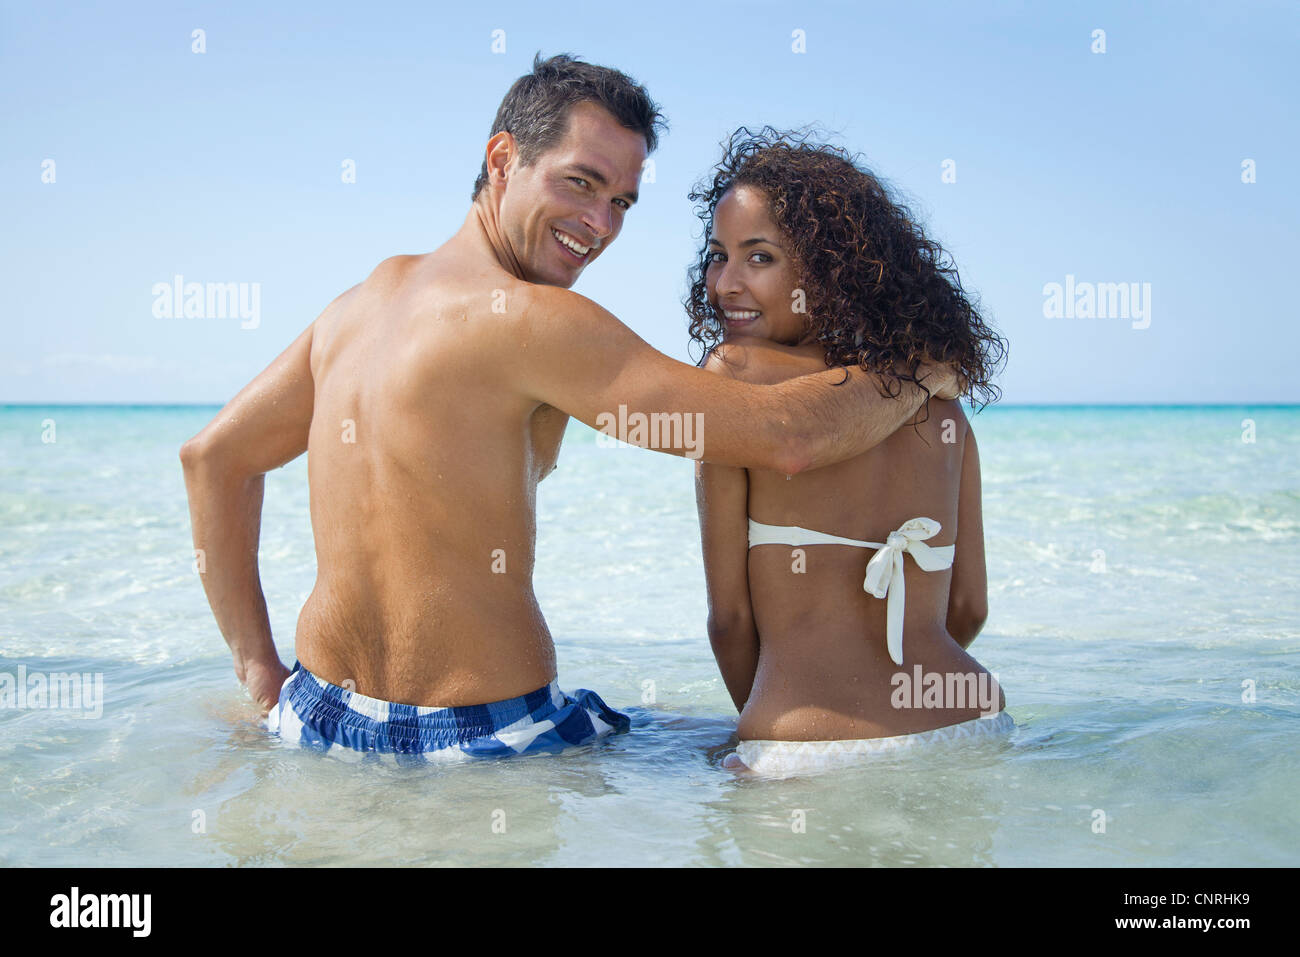 Couple waist deep in water at the beach, smiling over shoulders at camera - Stock Image